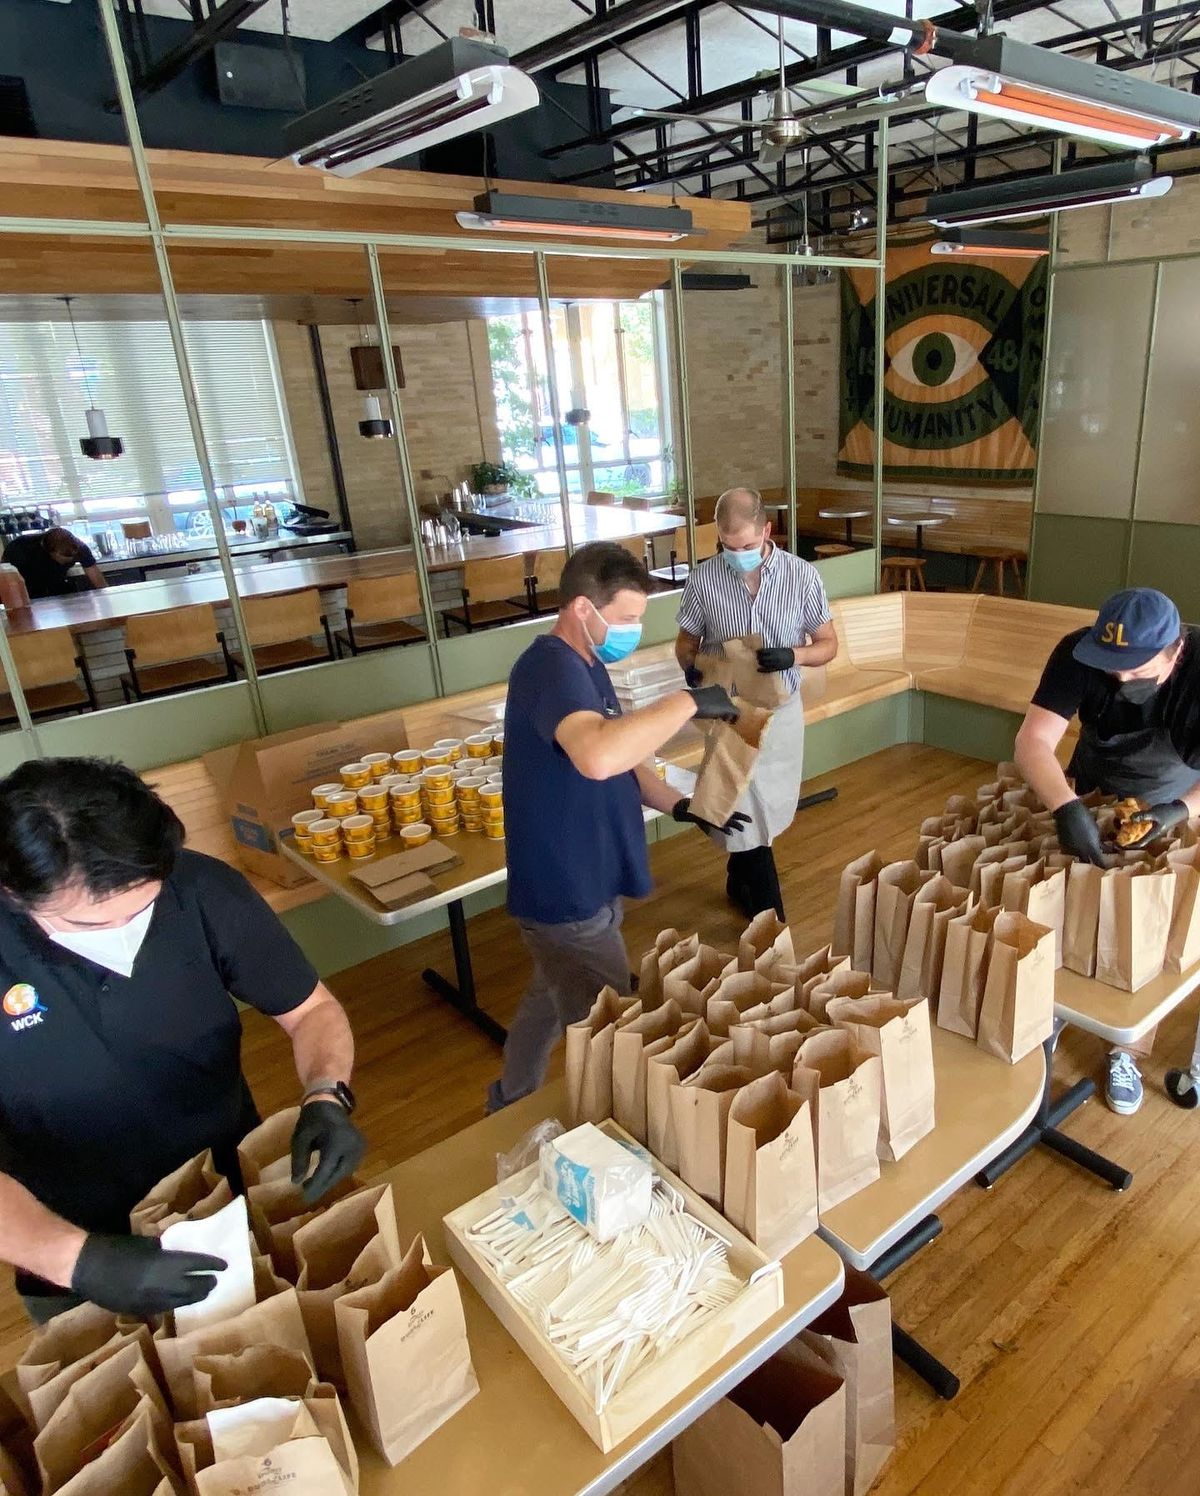 The Carpenter Hotel team prepping meals for poll workers